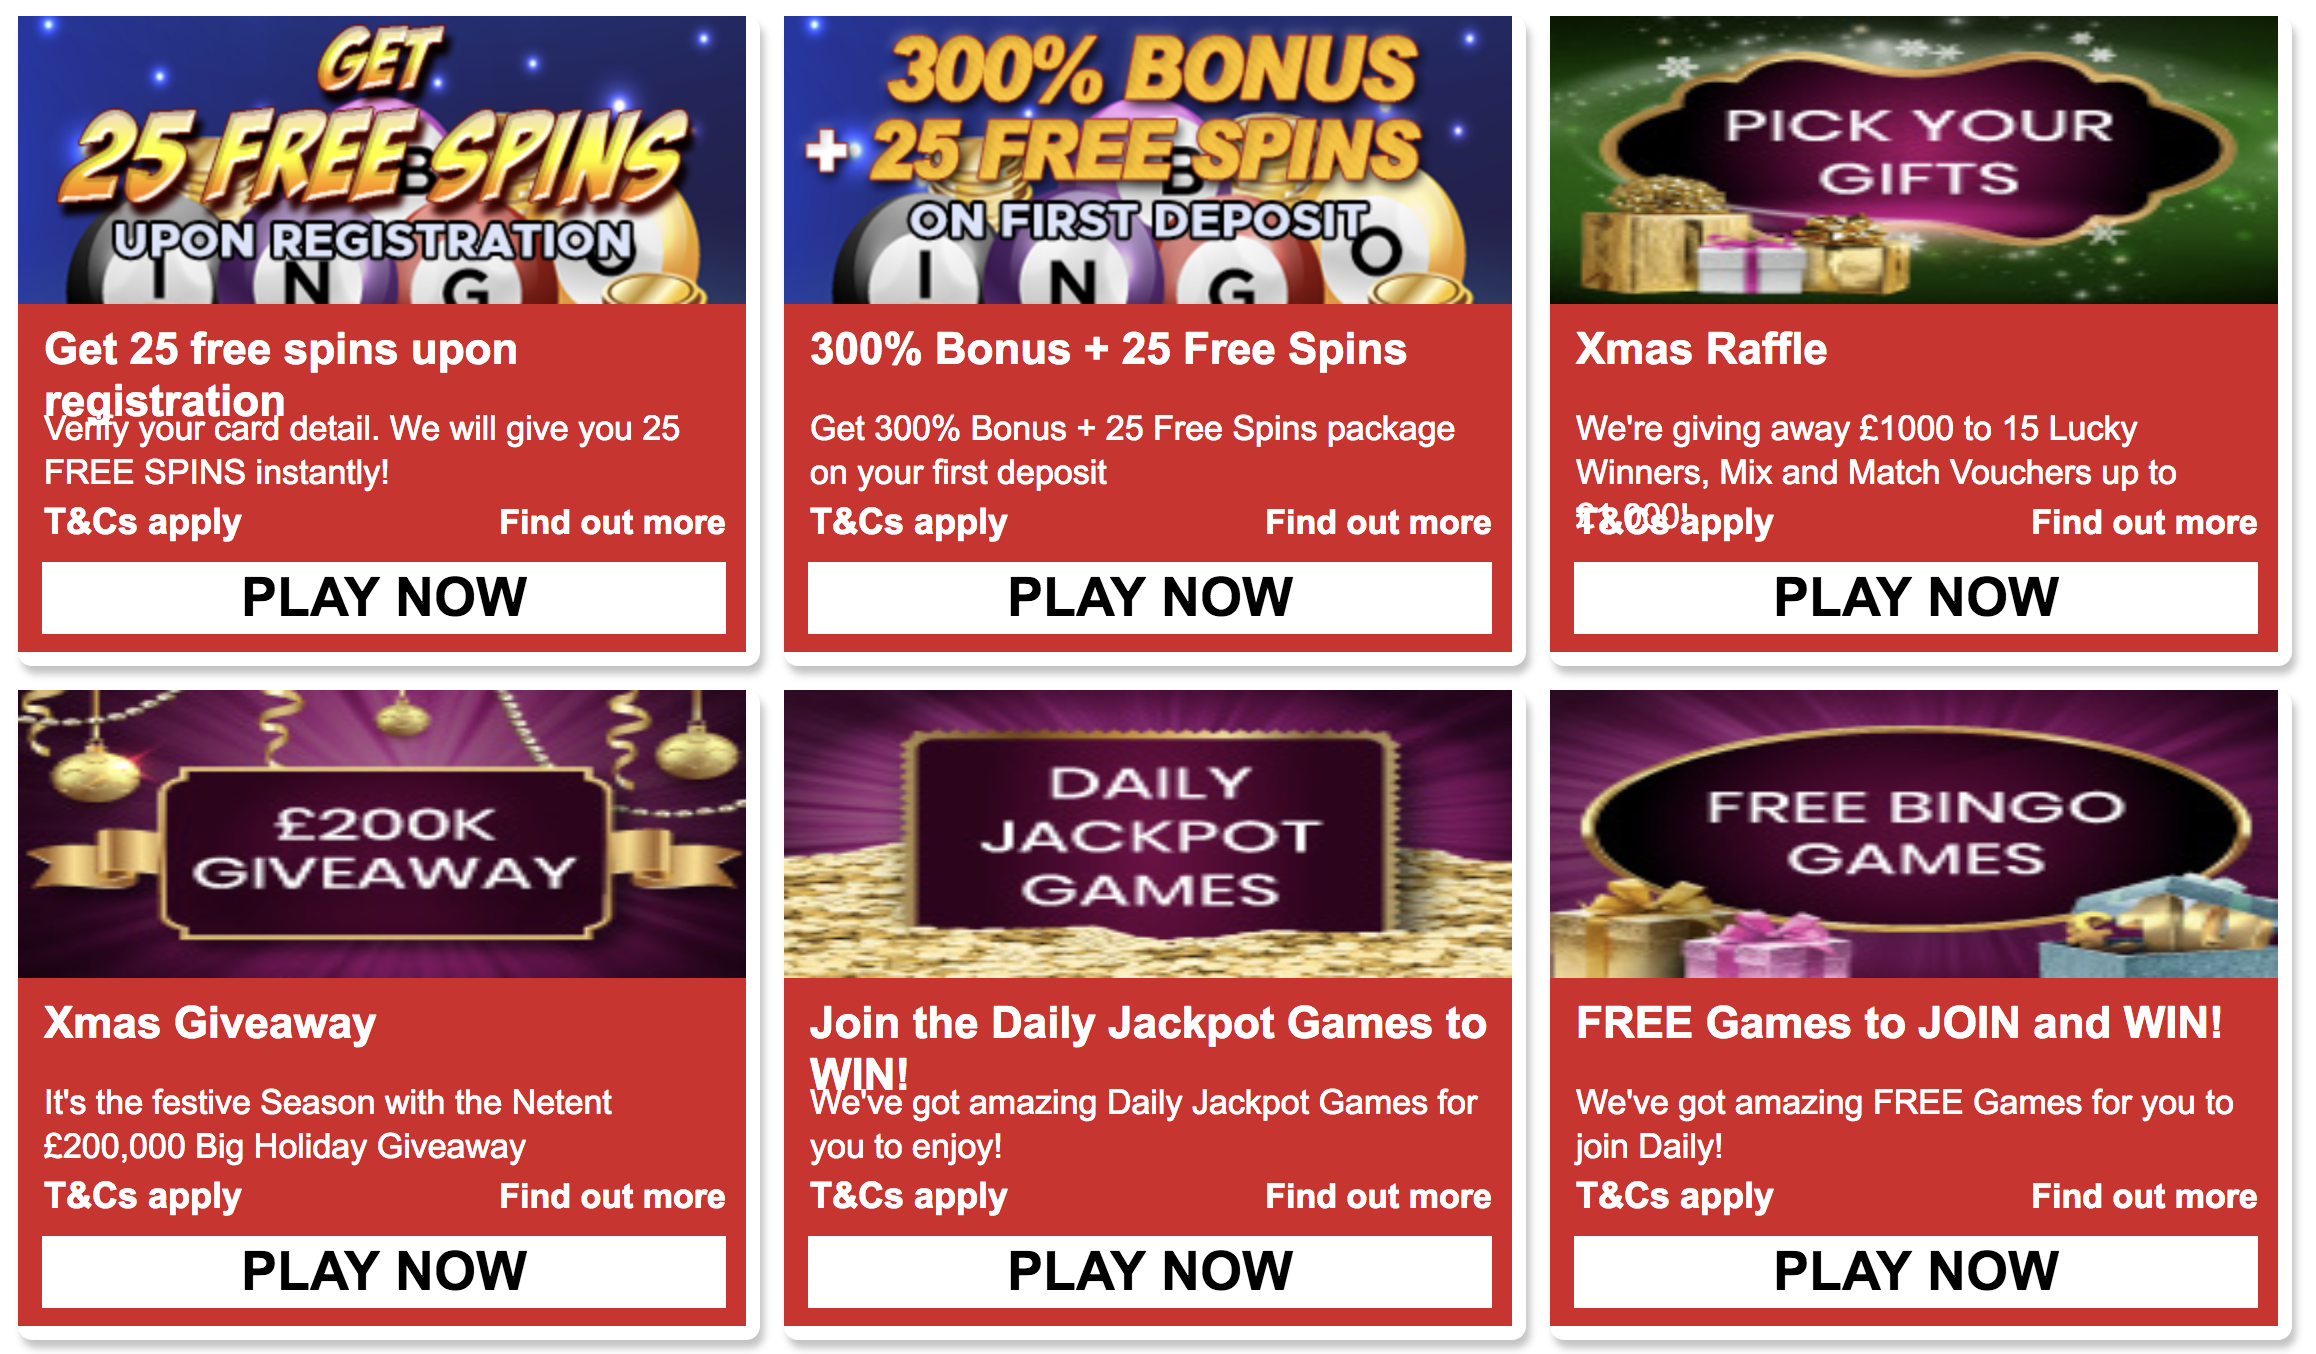 Latest Bingo News - Sizzling Hot Promotions at New Bingo Site Quid Bingo